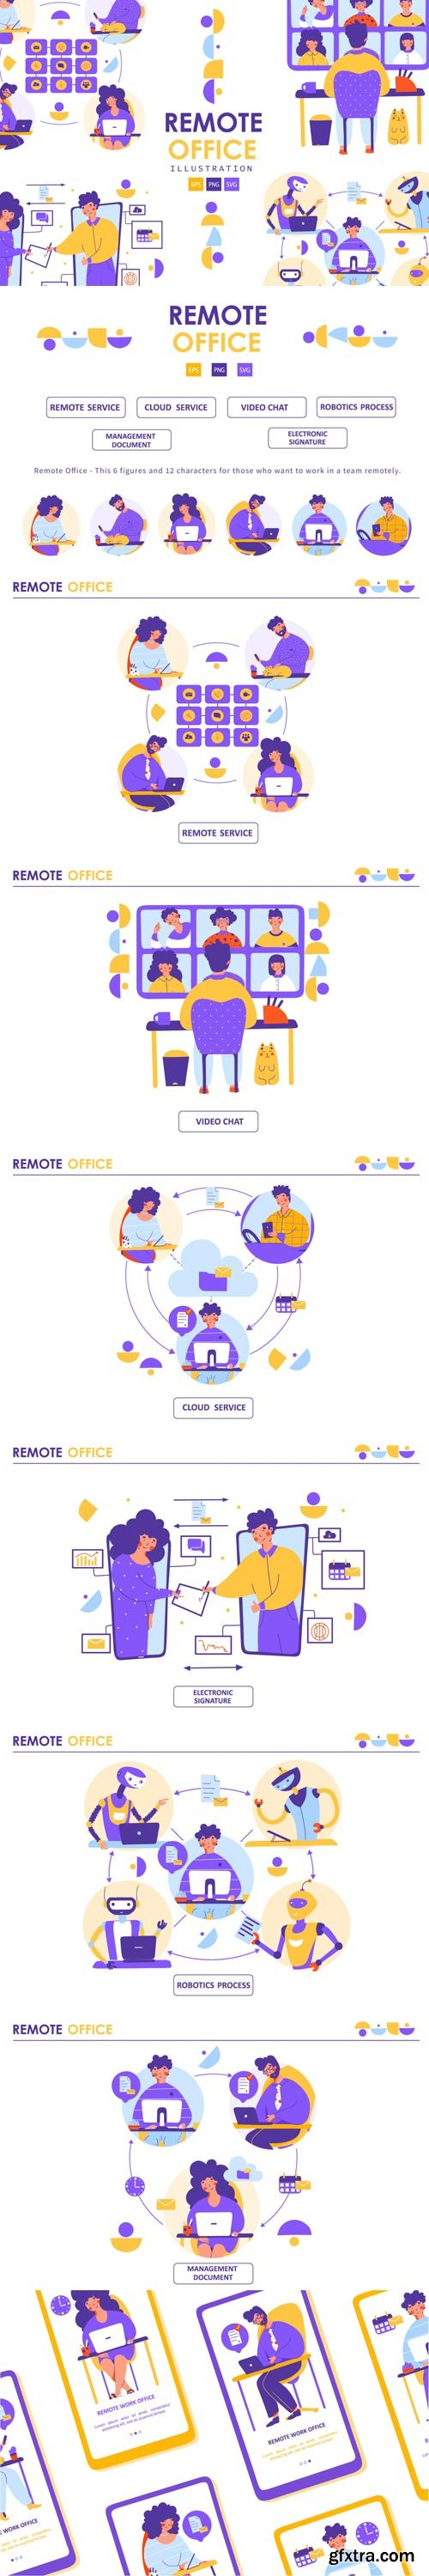 YellowImages - Remote Office - illustration - 83525